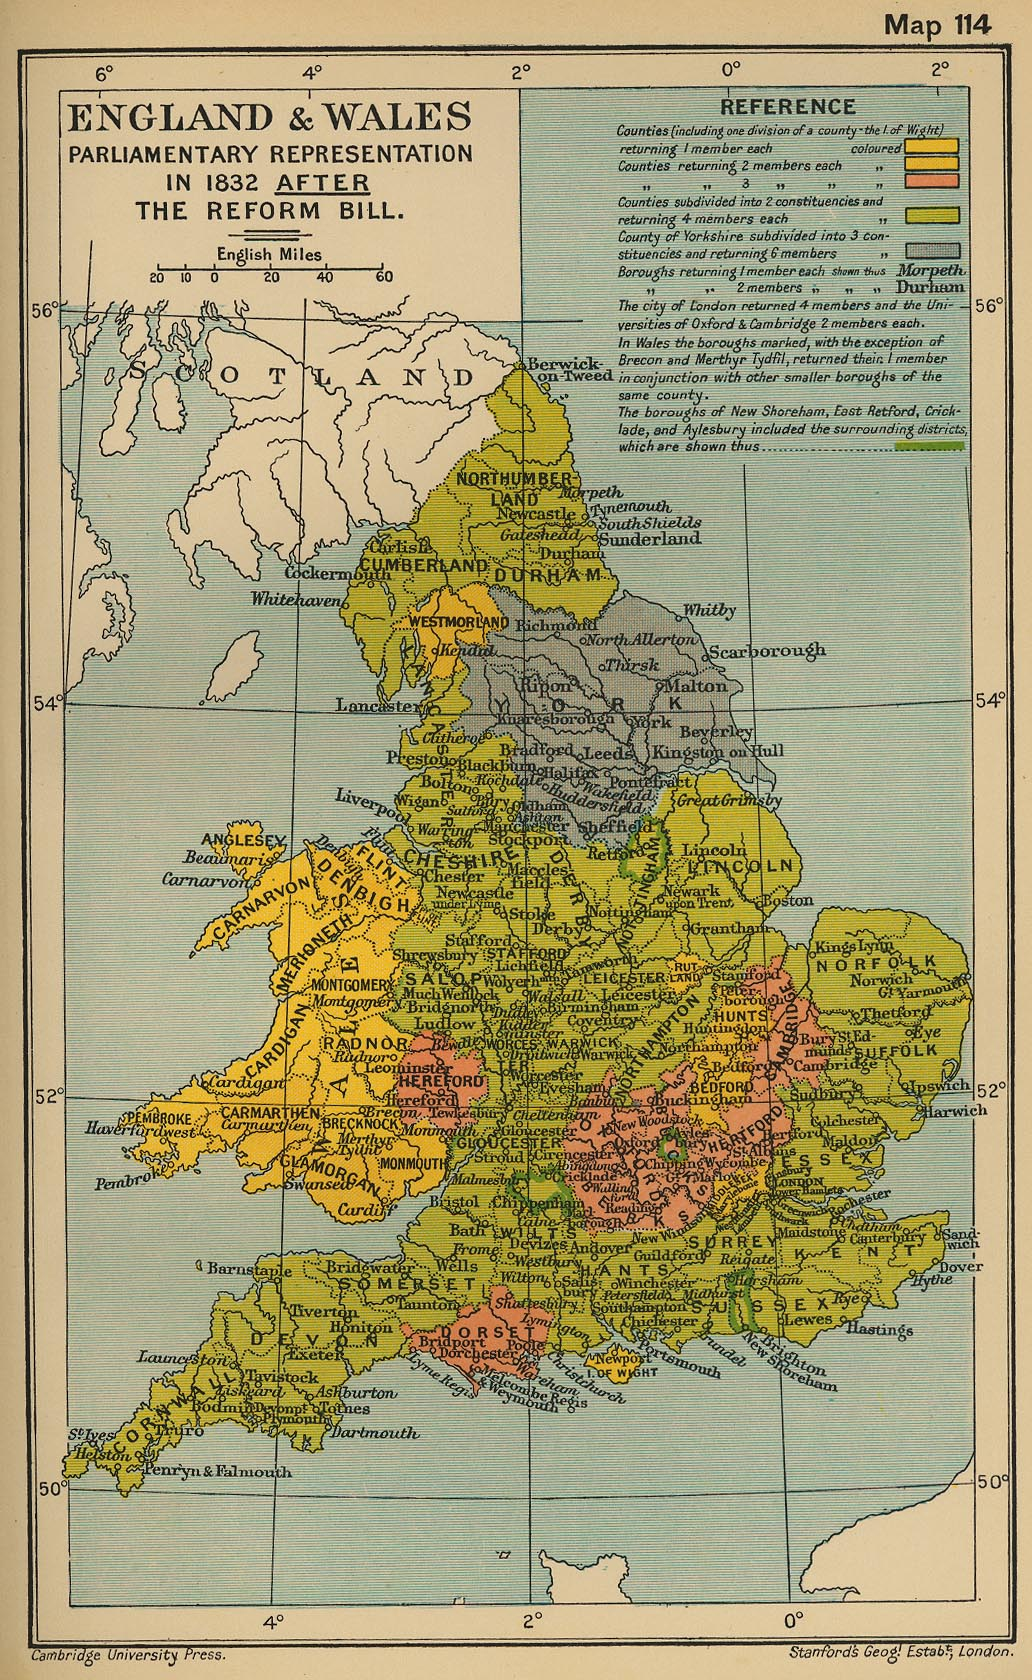 Historical Map of England and Wales: Parliamentary Representation in 1832 - After the Reform Bill